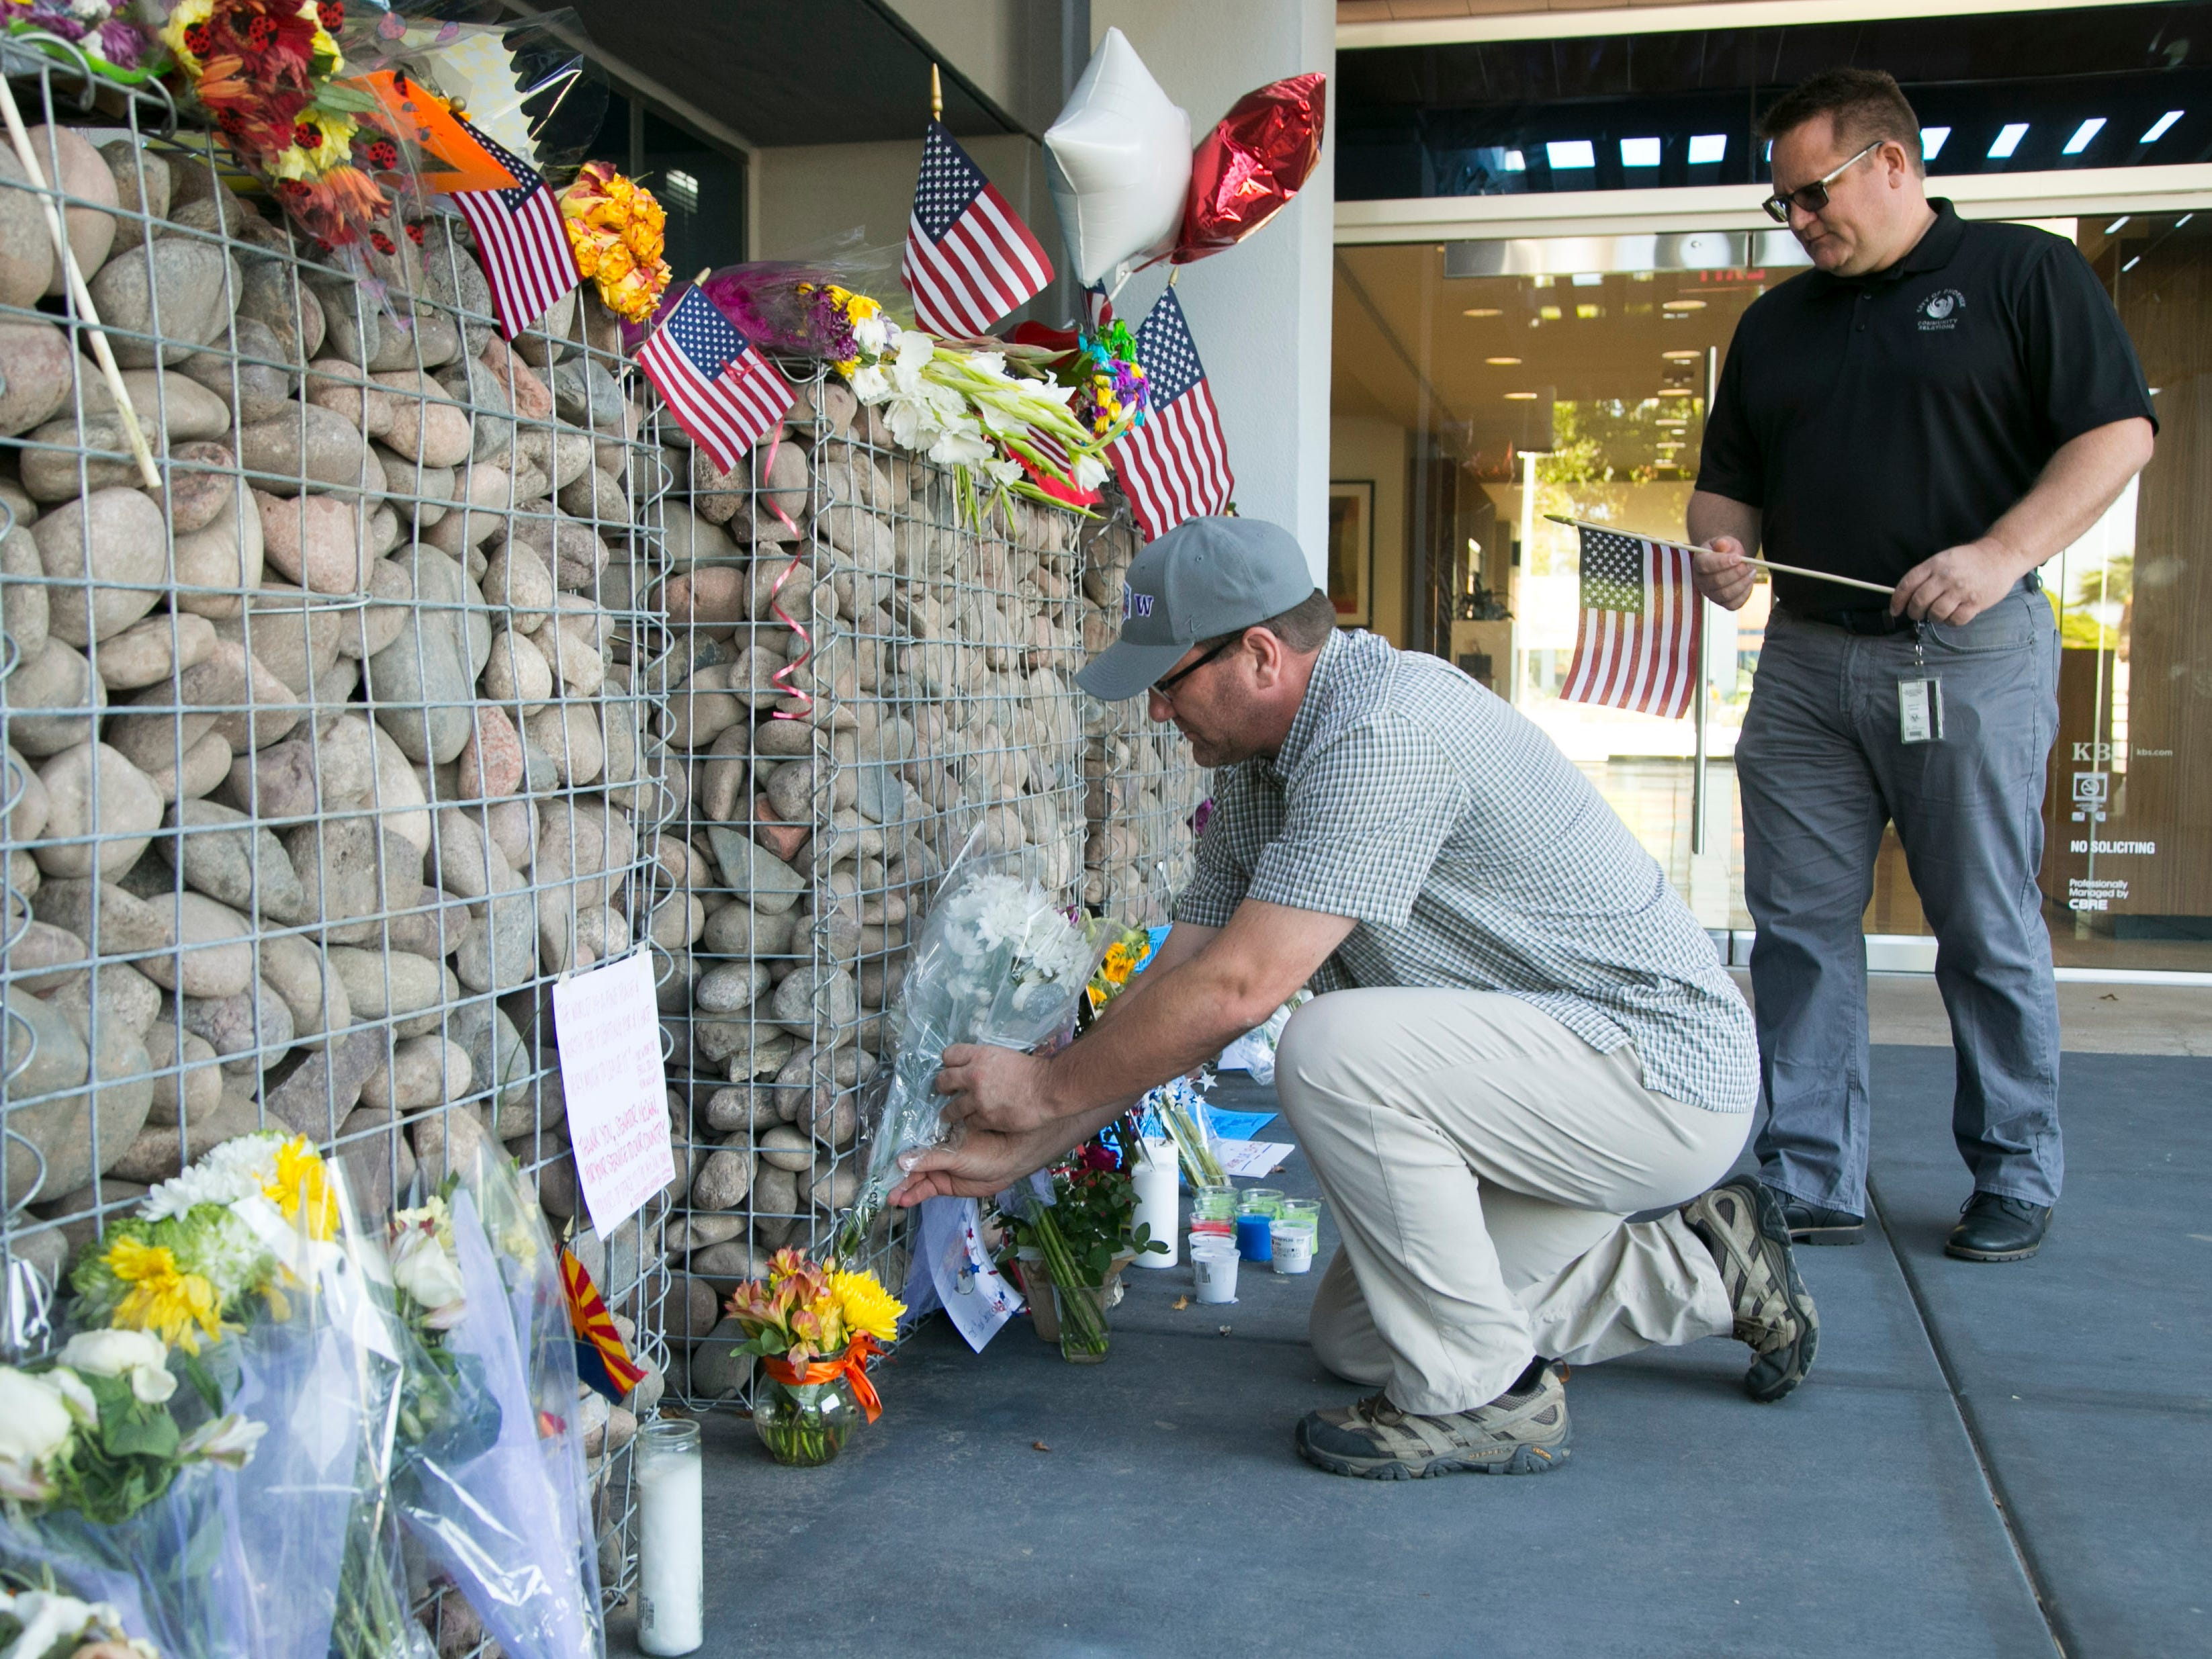 James Olsen (bottom) of Columbia, S.C., and his brother, Ted Olsen of Phoenix, place flowers and an American flag at a memorial for Sen. John McCain at McCain's office in Phoenix on Aug. 27, 2018.